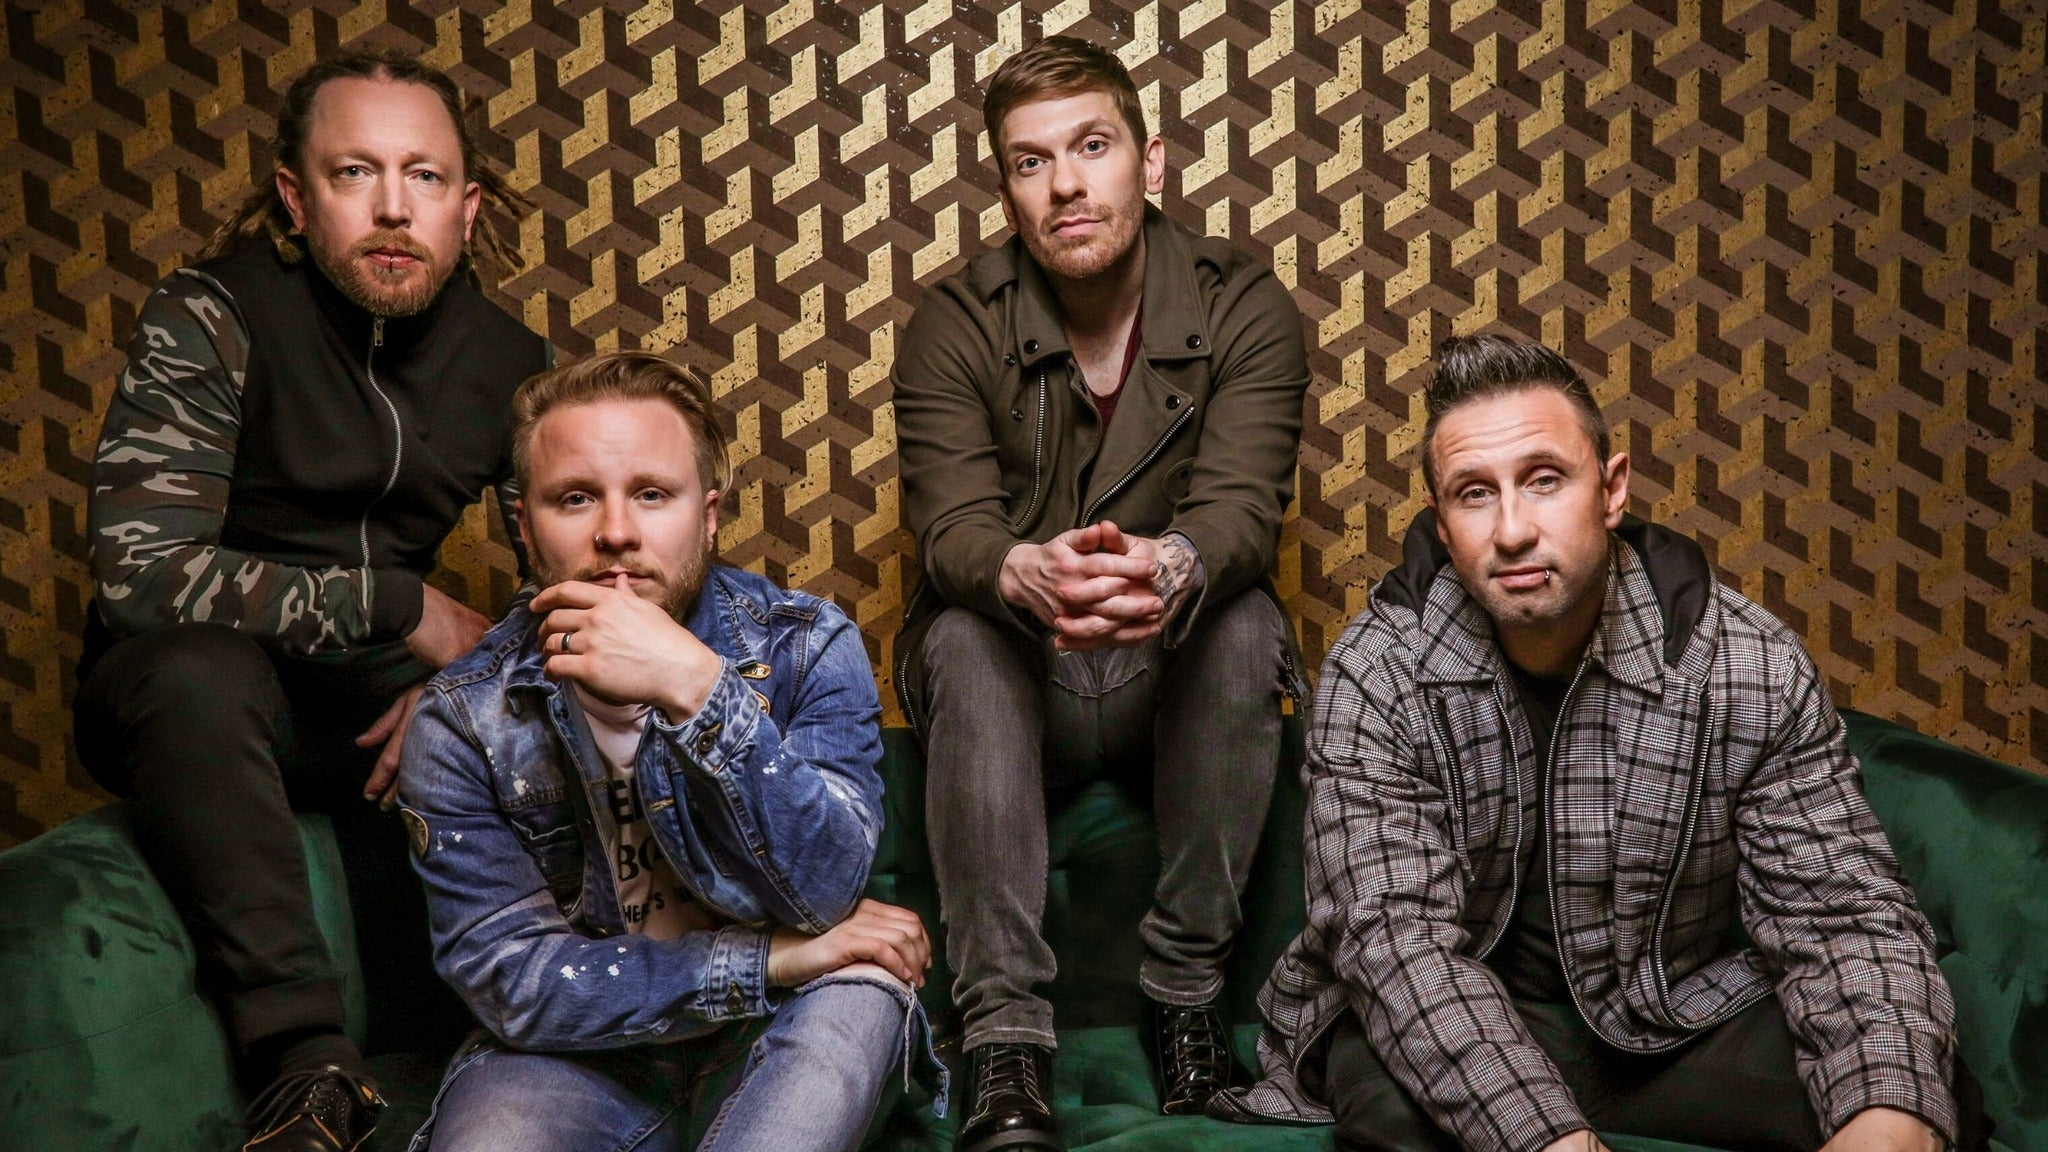 Shinedown pre-sale passcode for event tickets in Chattanooga, TN (Soldiers and Sailors Memorial Auditorium)